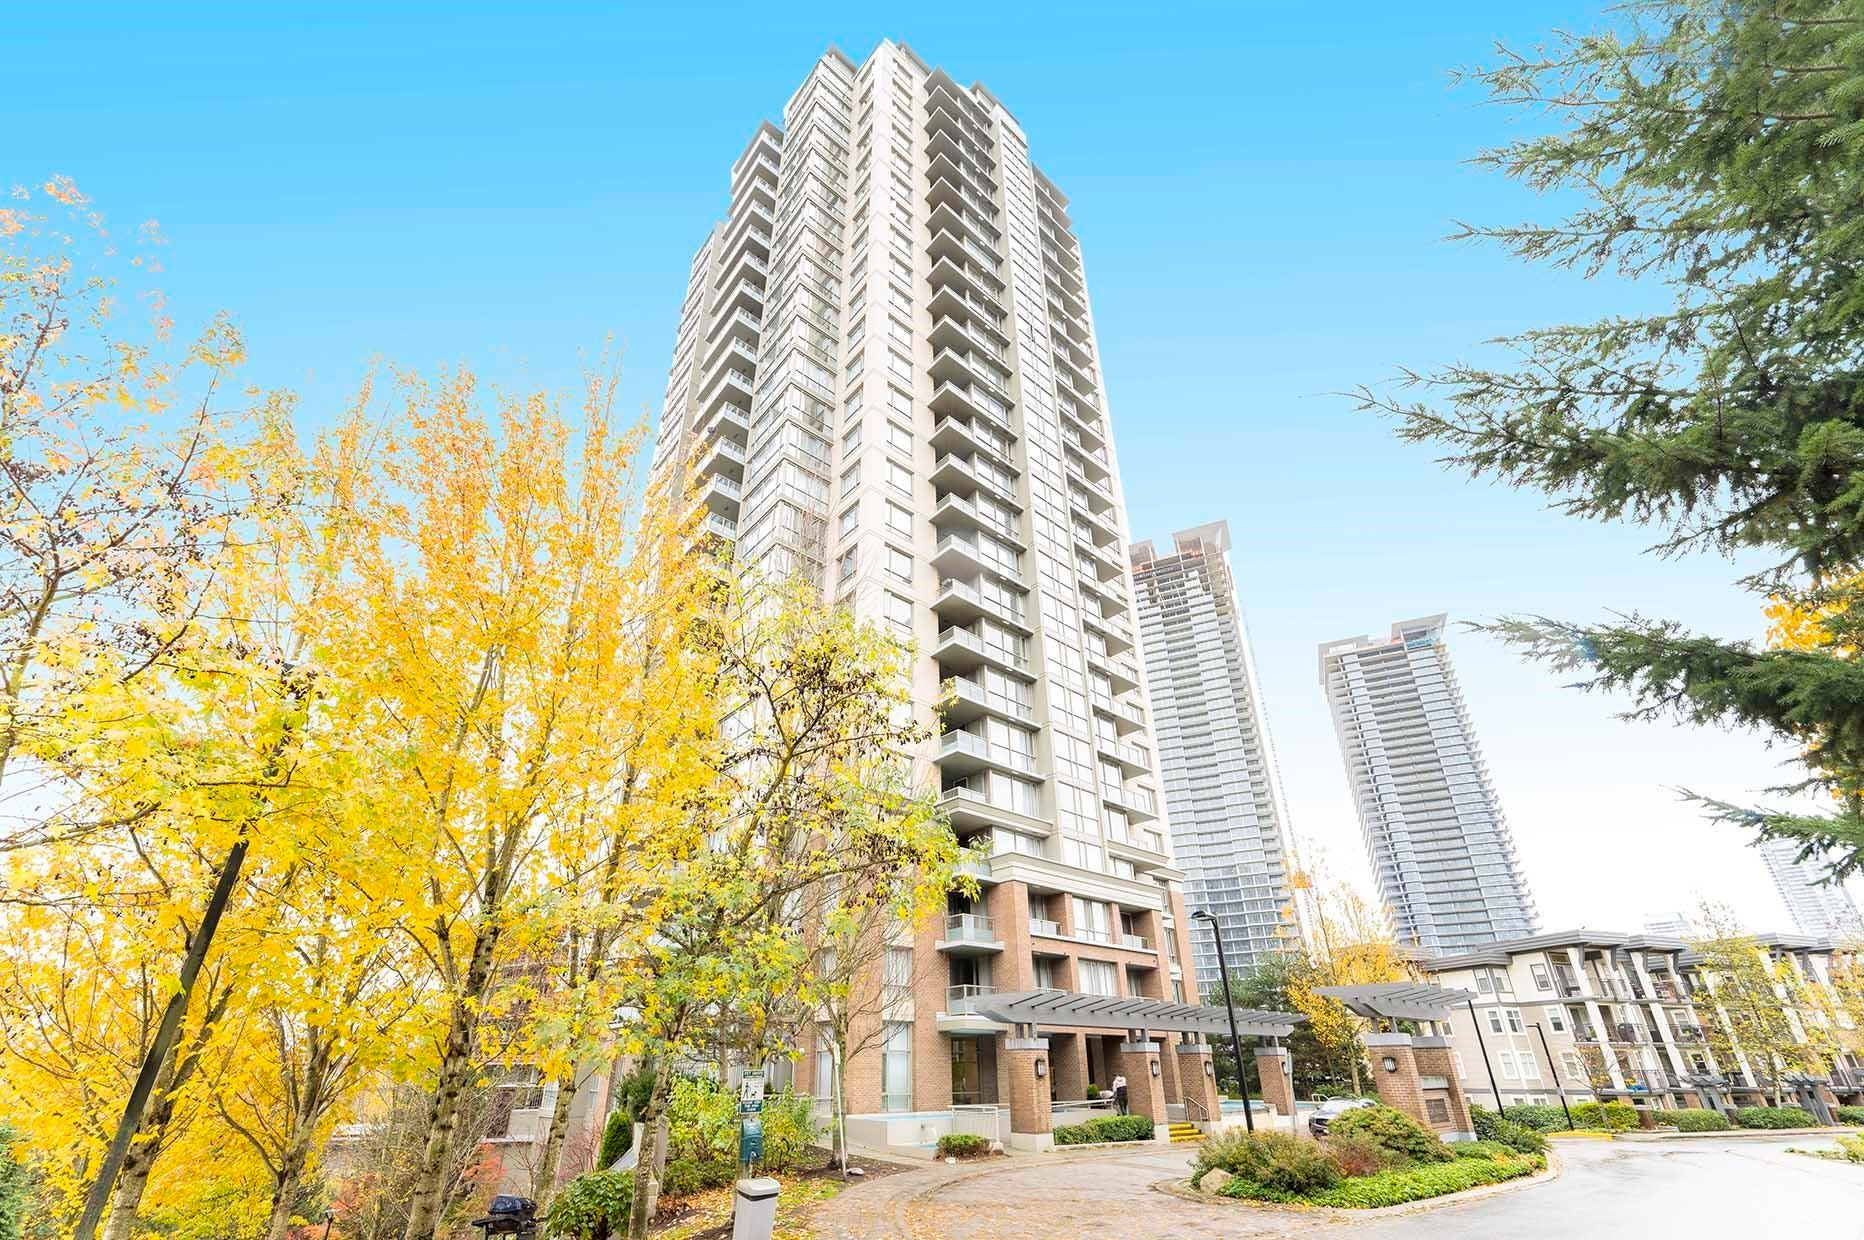 2207 4888 BRENTWOOD DRIVE - Brentwood Park Apartment/Condo for sale, 2 Bedrooms (R2626141) - #1